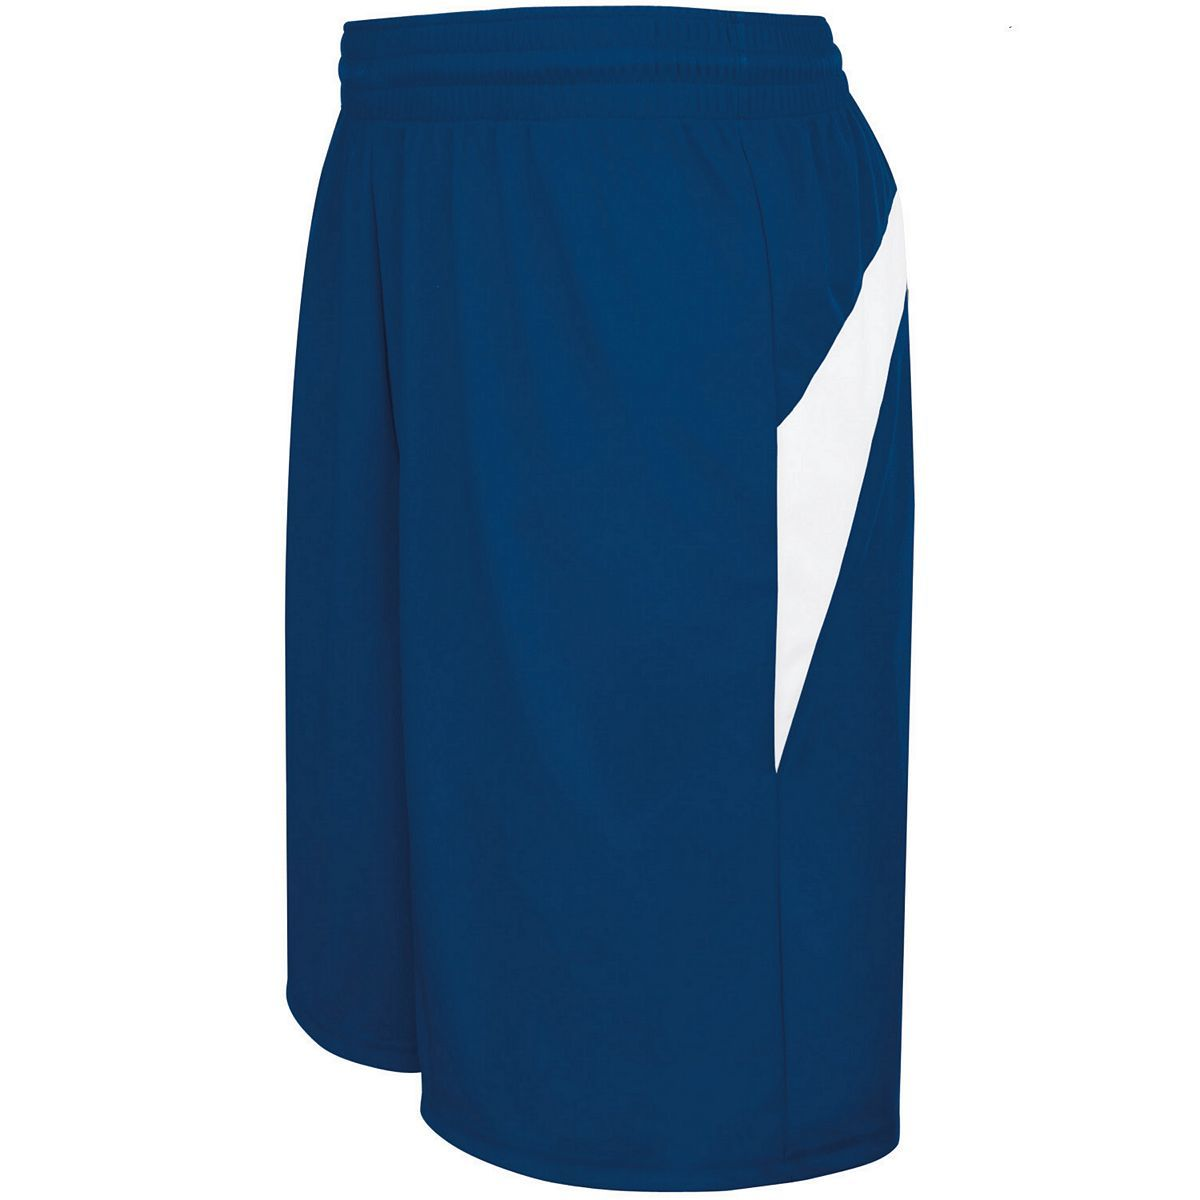 Adult Transition Game Shorts - NAVY/WHITE